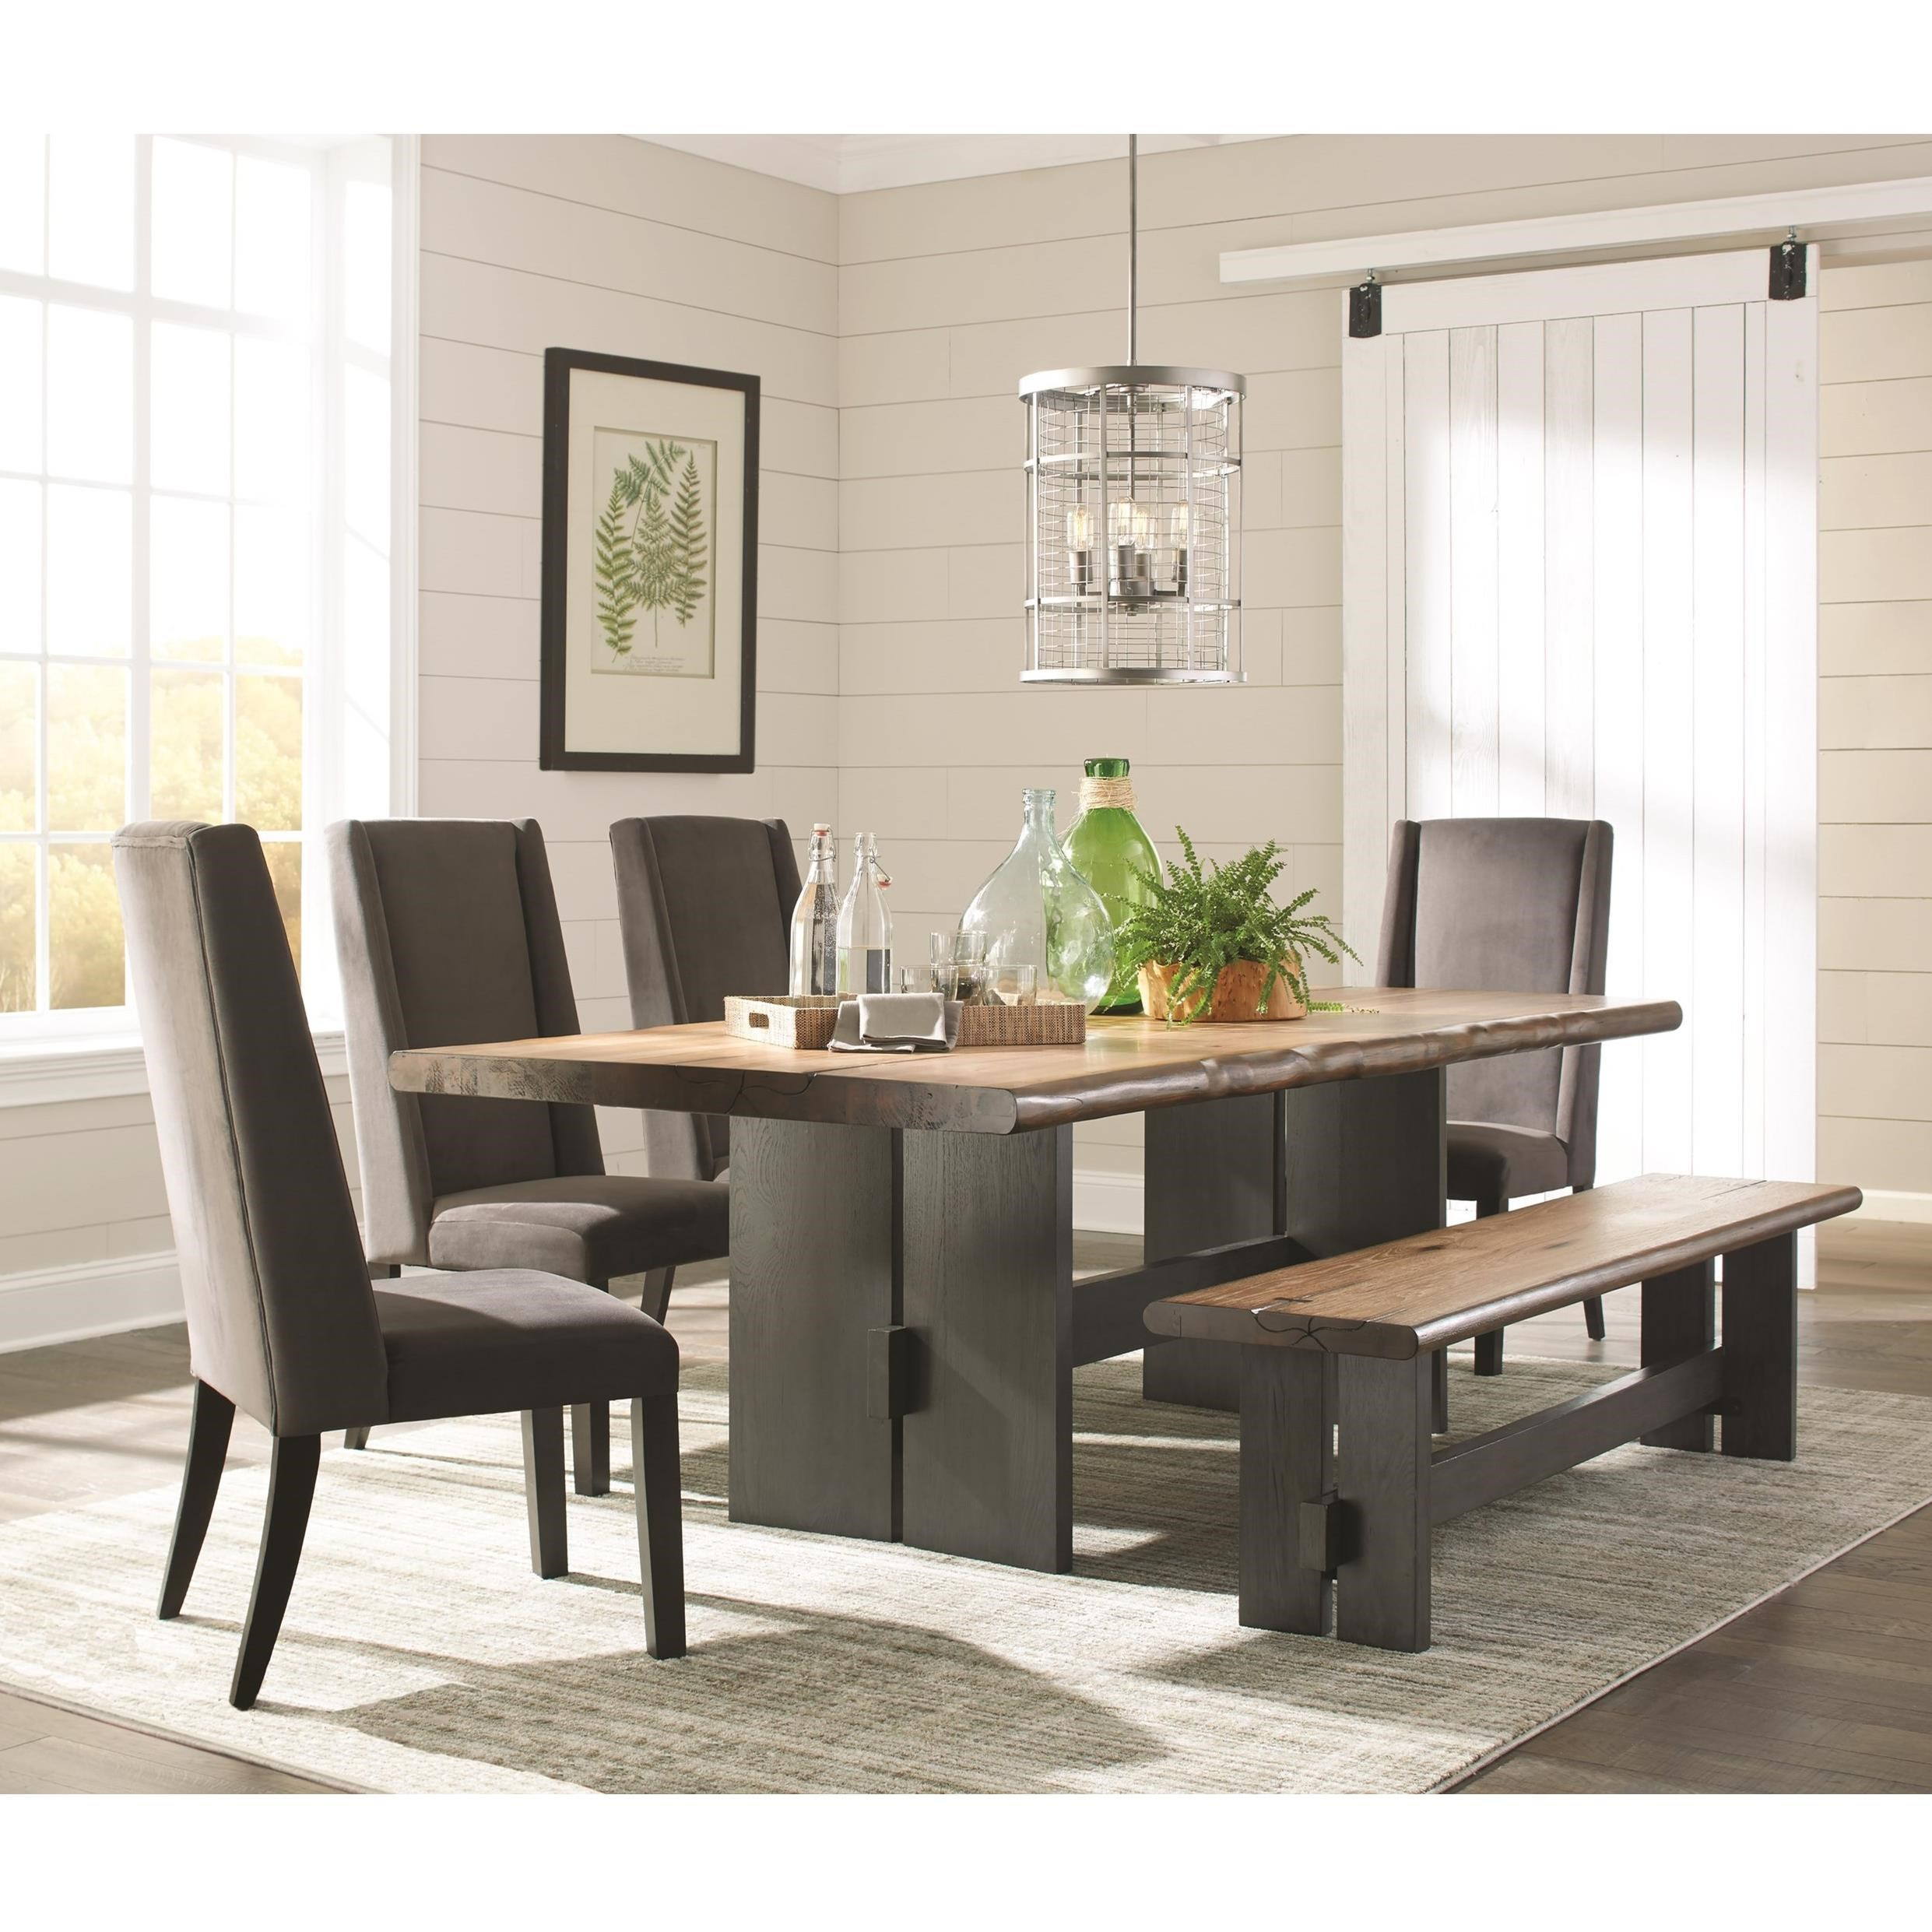 Marquette Dining Table Set With Bench with sizing 2482 X 2482